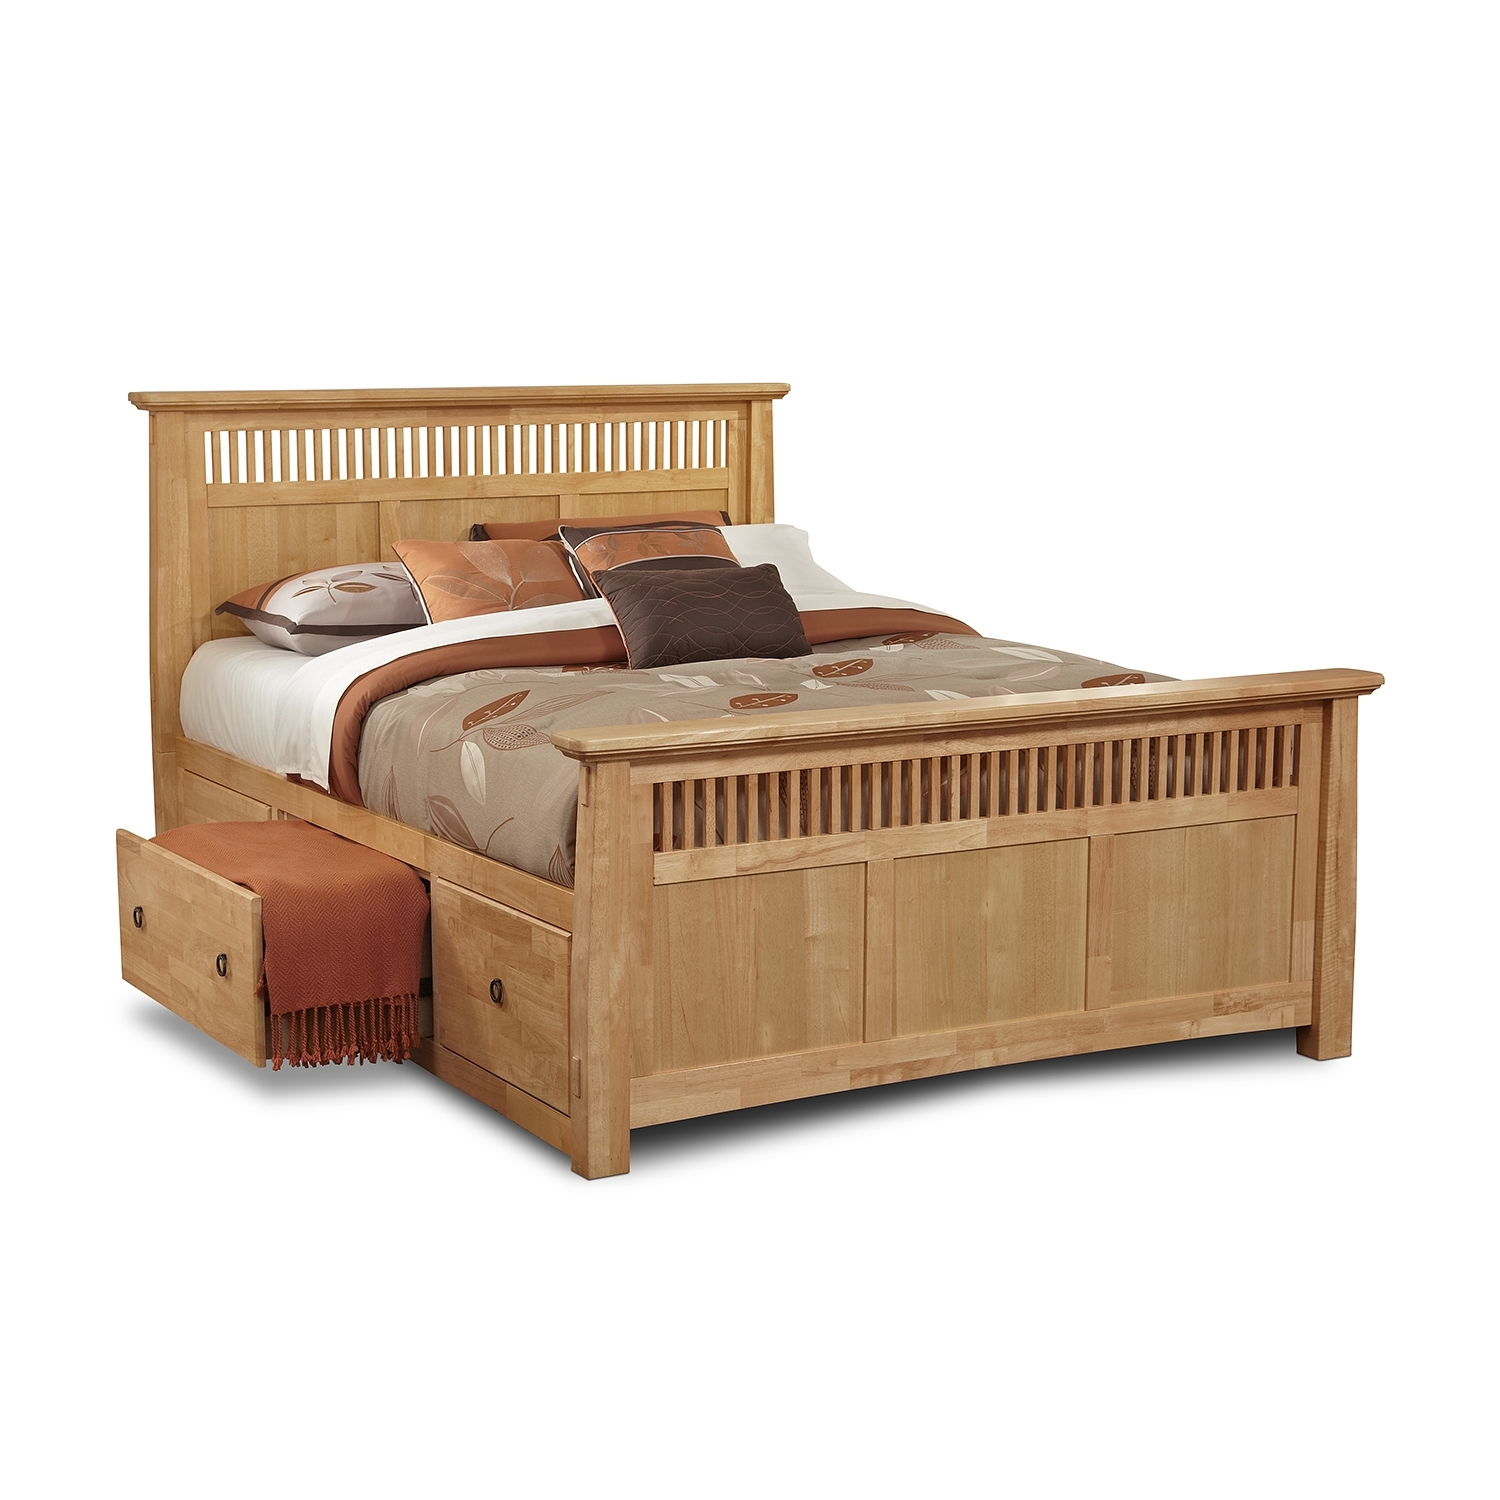 Queen Bed Frames With Storage Drawers